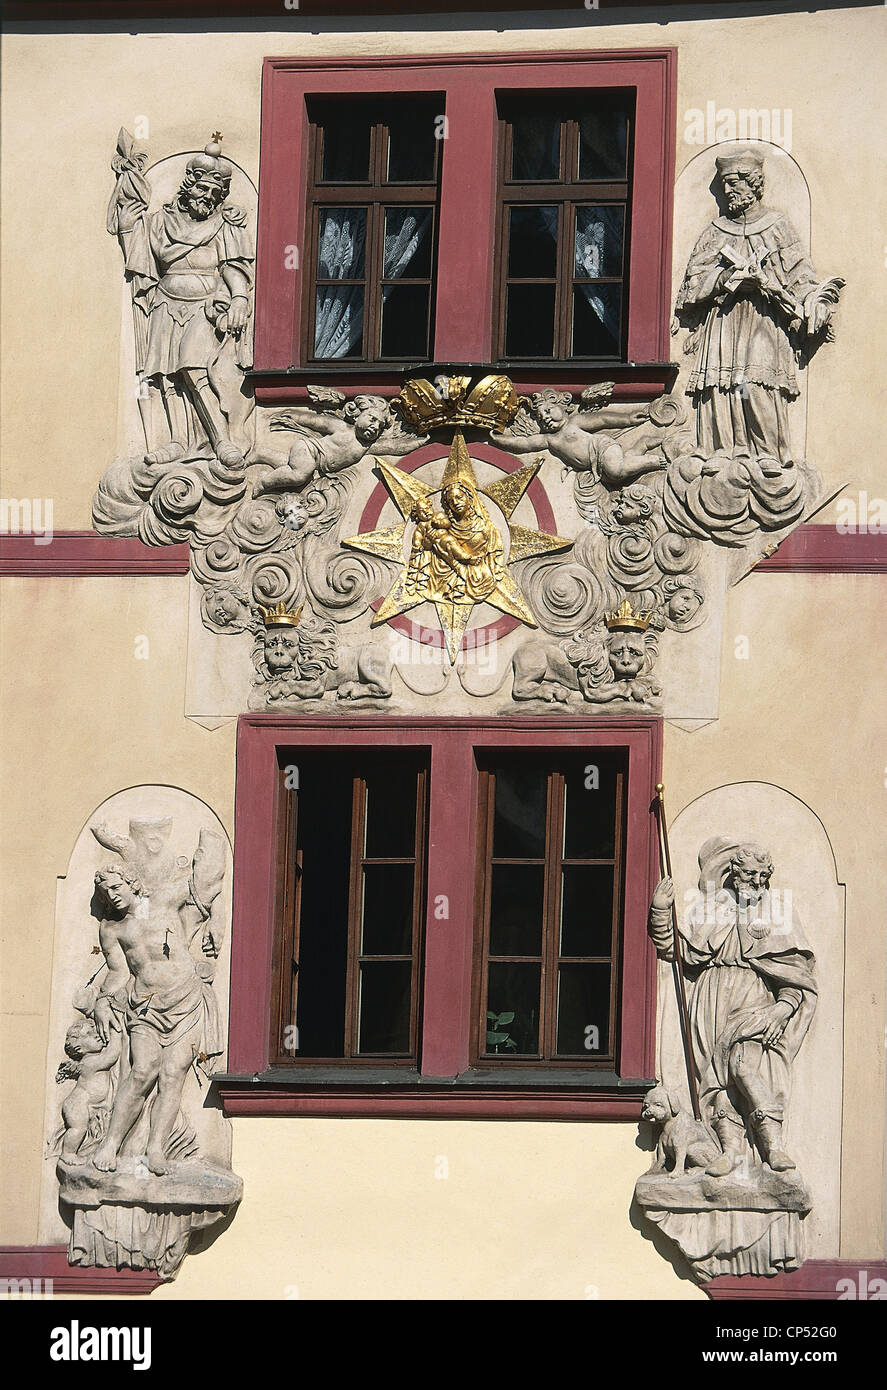 Czech Republic - Prague, Stare Mesto (Old Town, World Heritage Site by UNESCO, 1992), architectural detail. - Stock Image